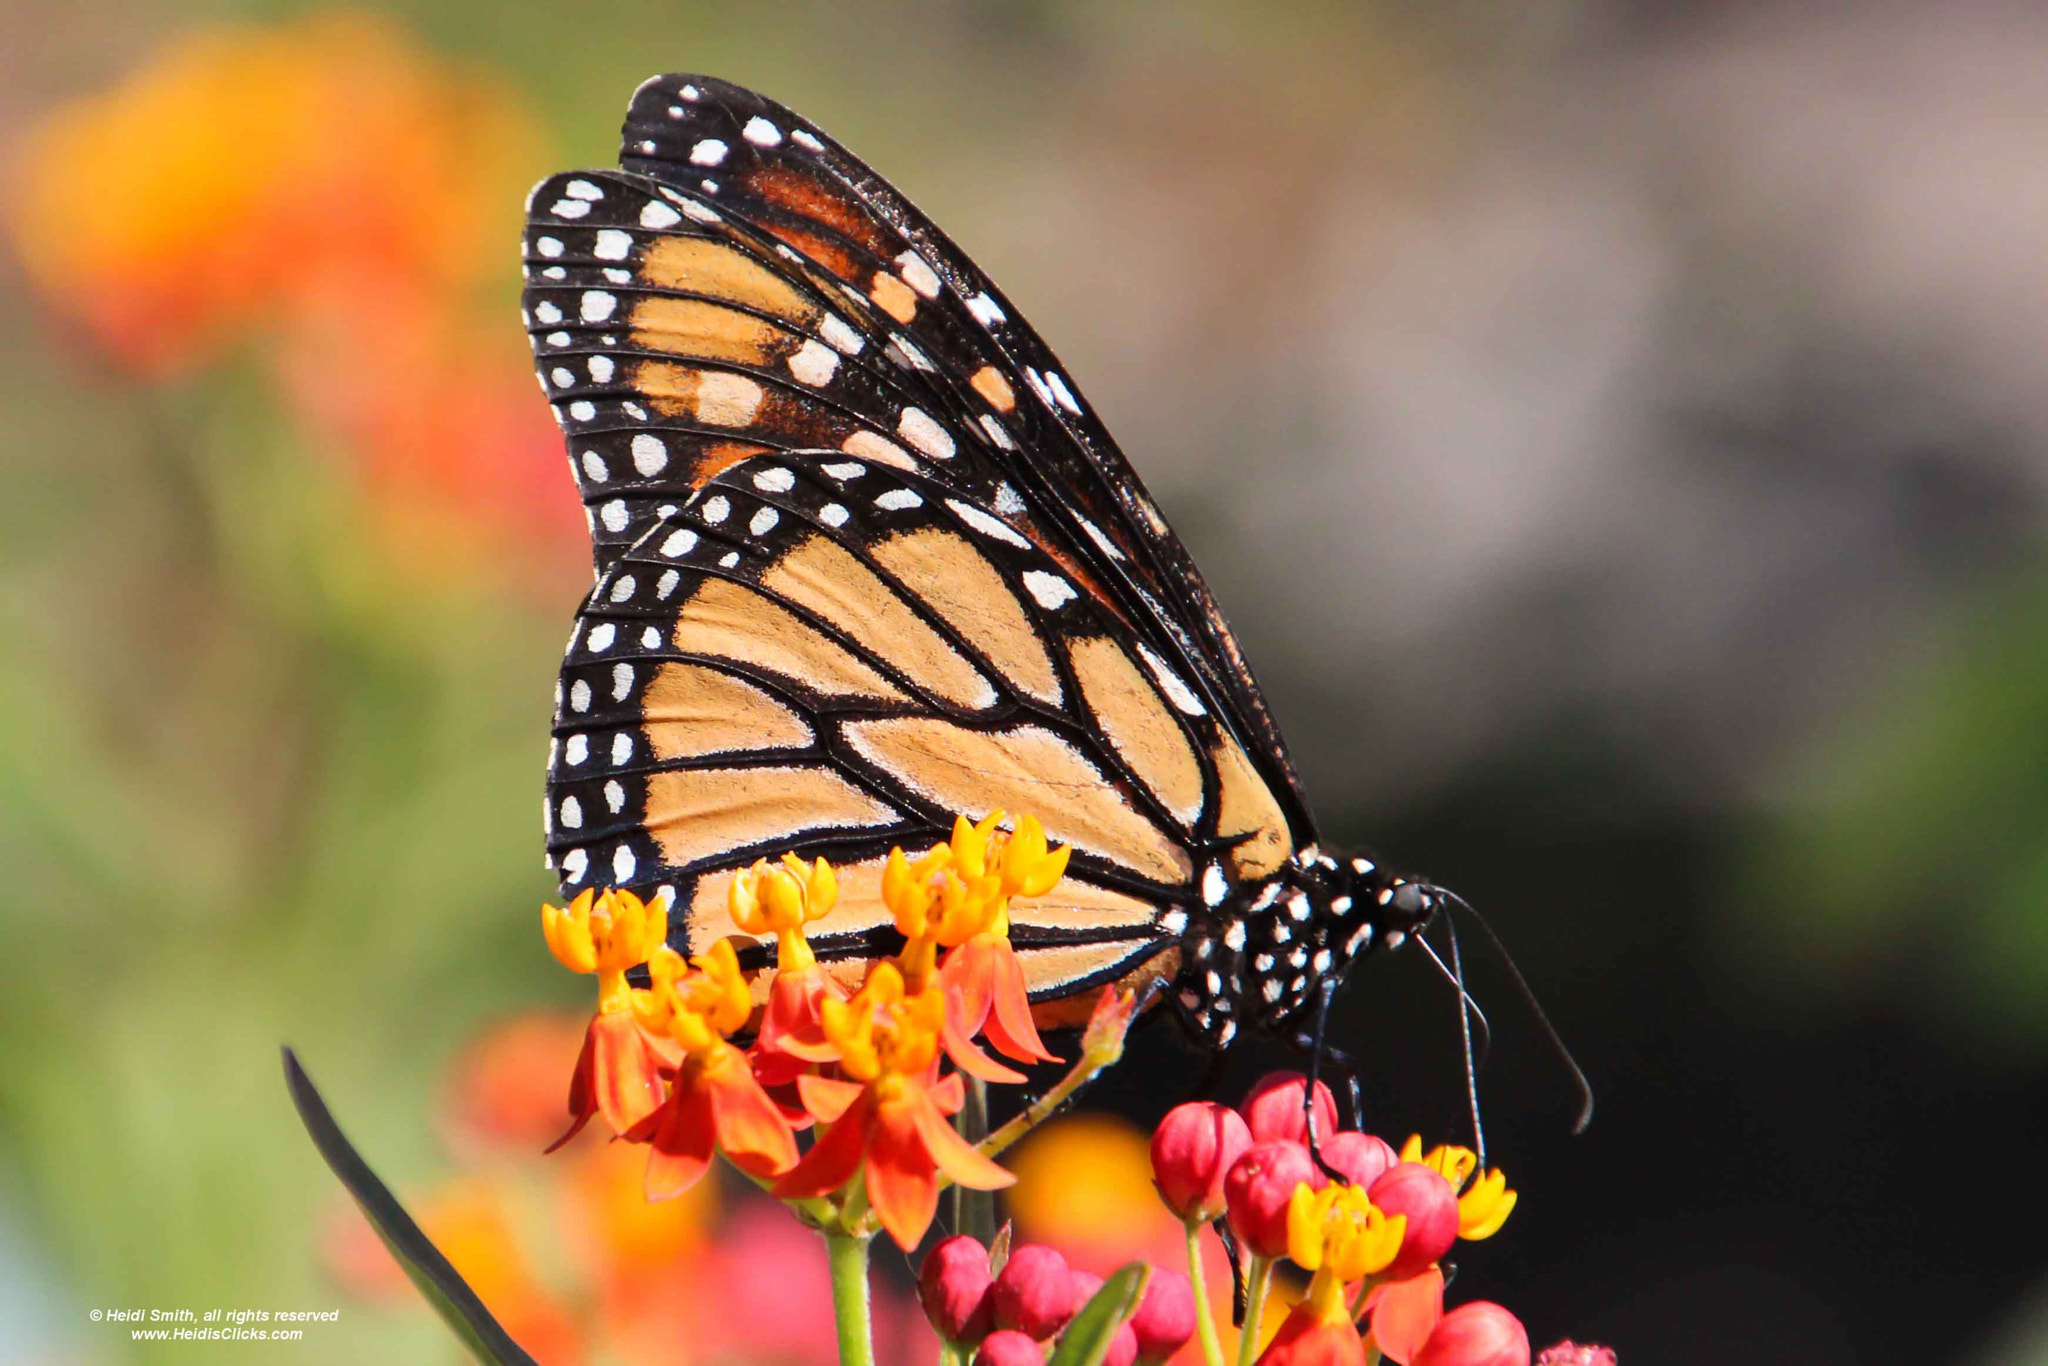 Photograph Monarch and Milkweed by Heidi Smith on 500px